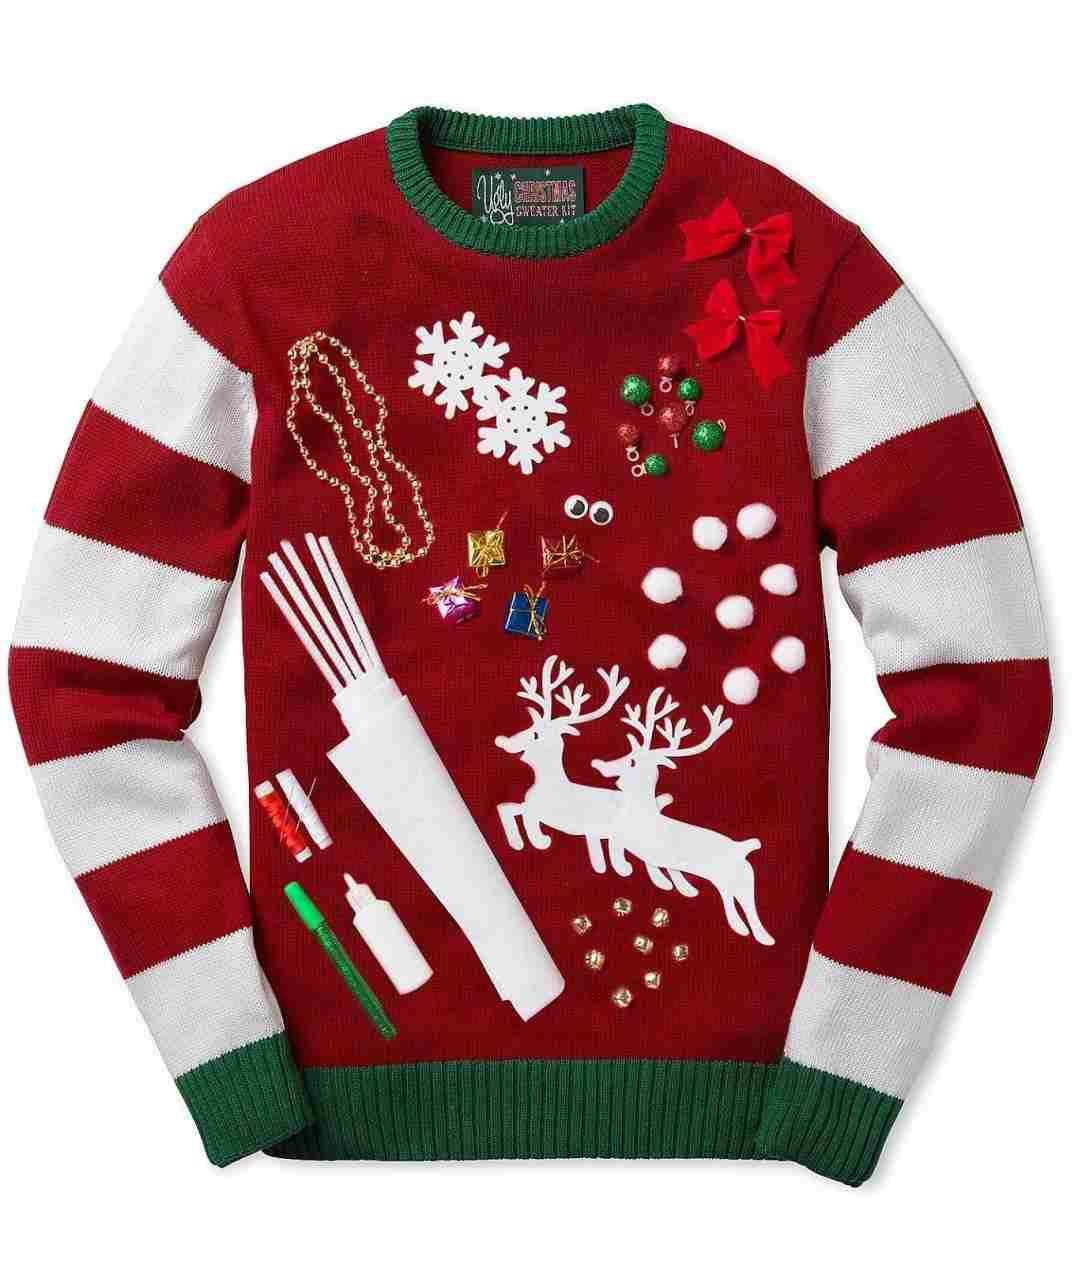 Ugly christmas sweater red. Great clipart people diy